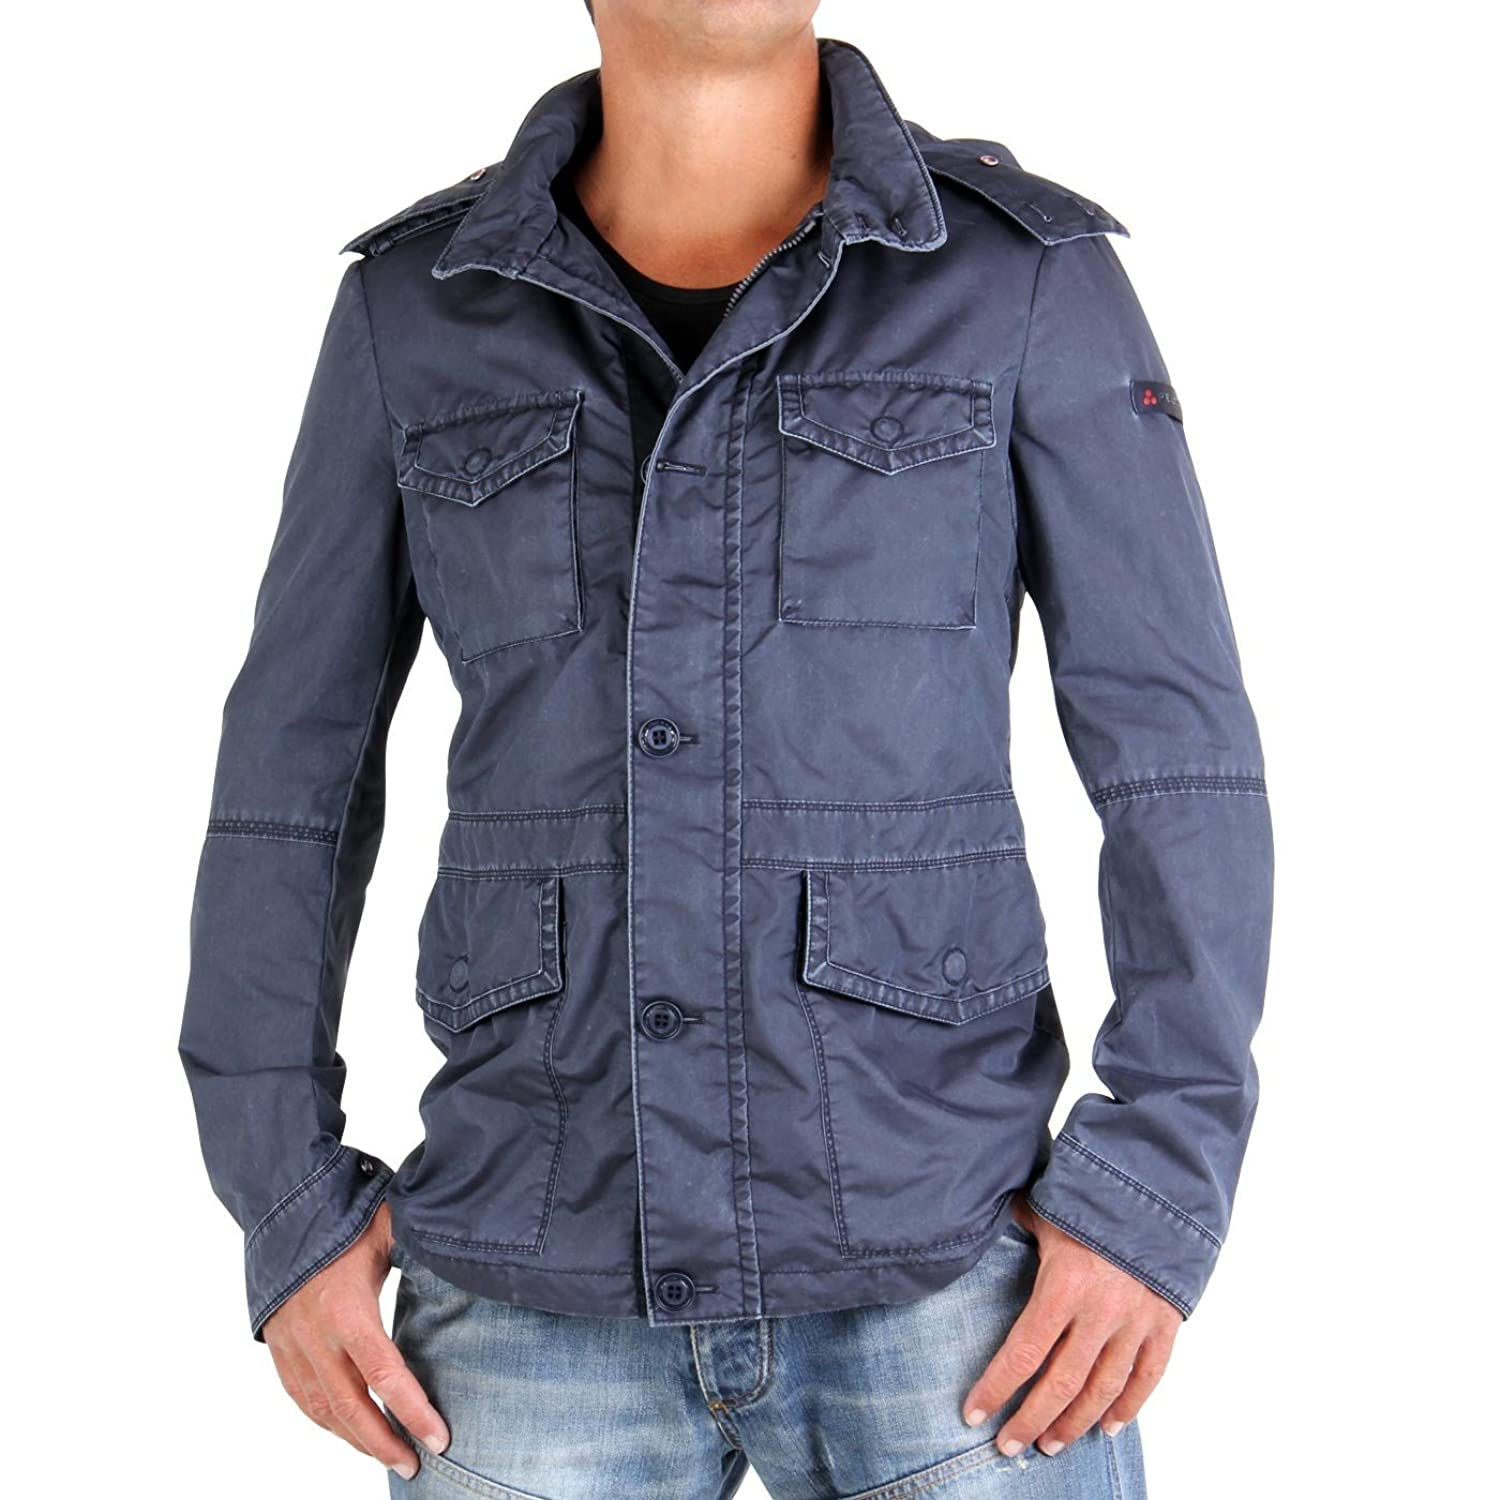 PEUTEREY Herren Jacke Celebration PEU0433 Navy